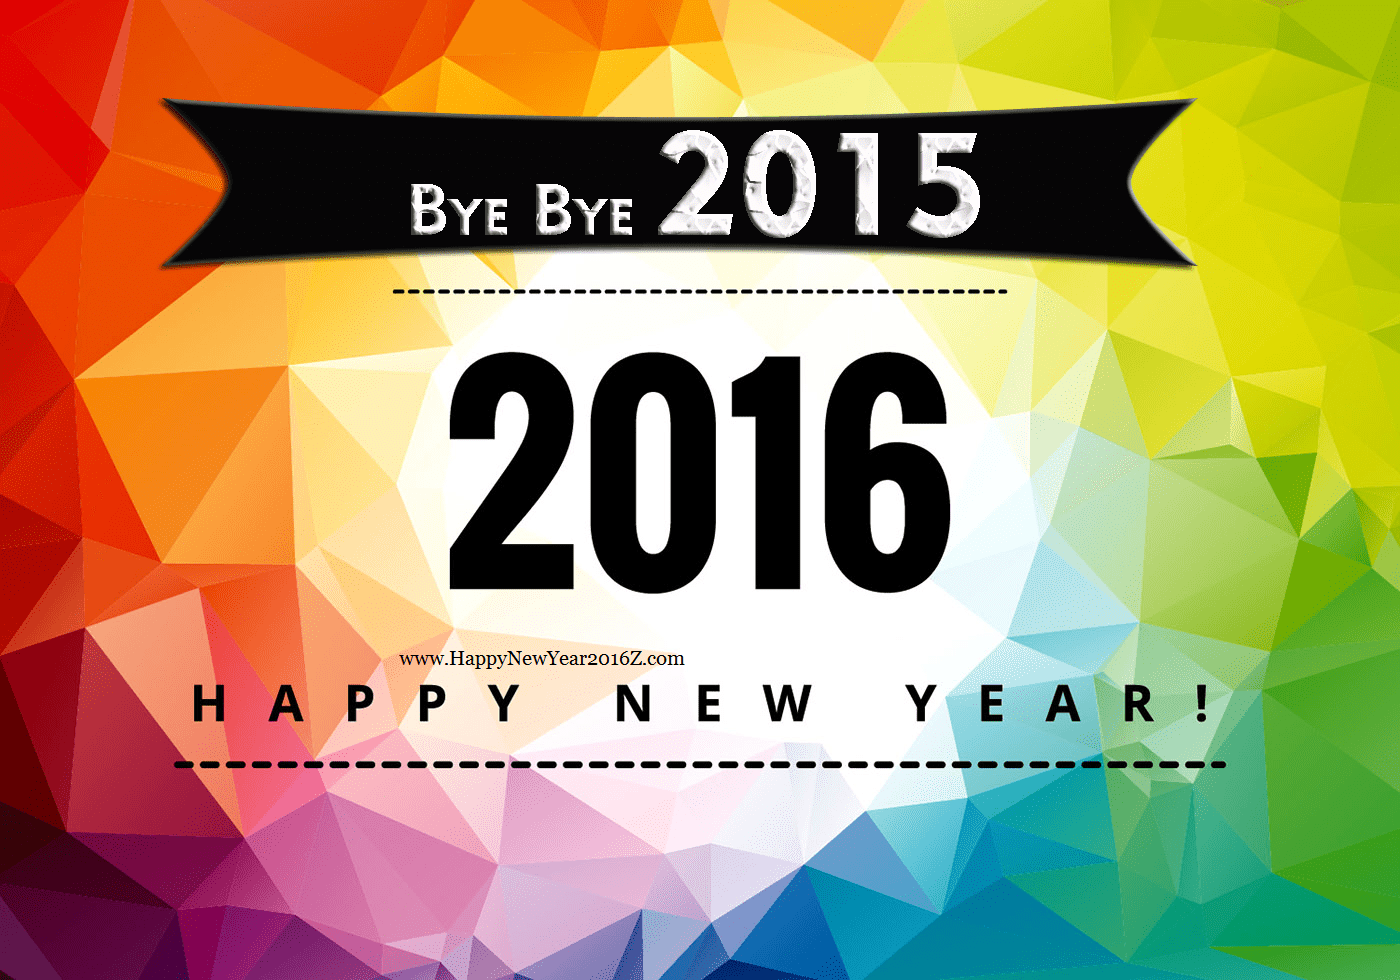 Welcome to 2016!–the weekend roundup